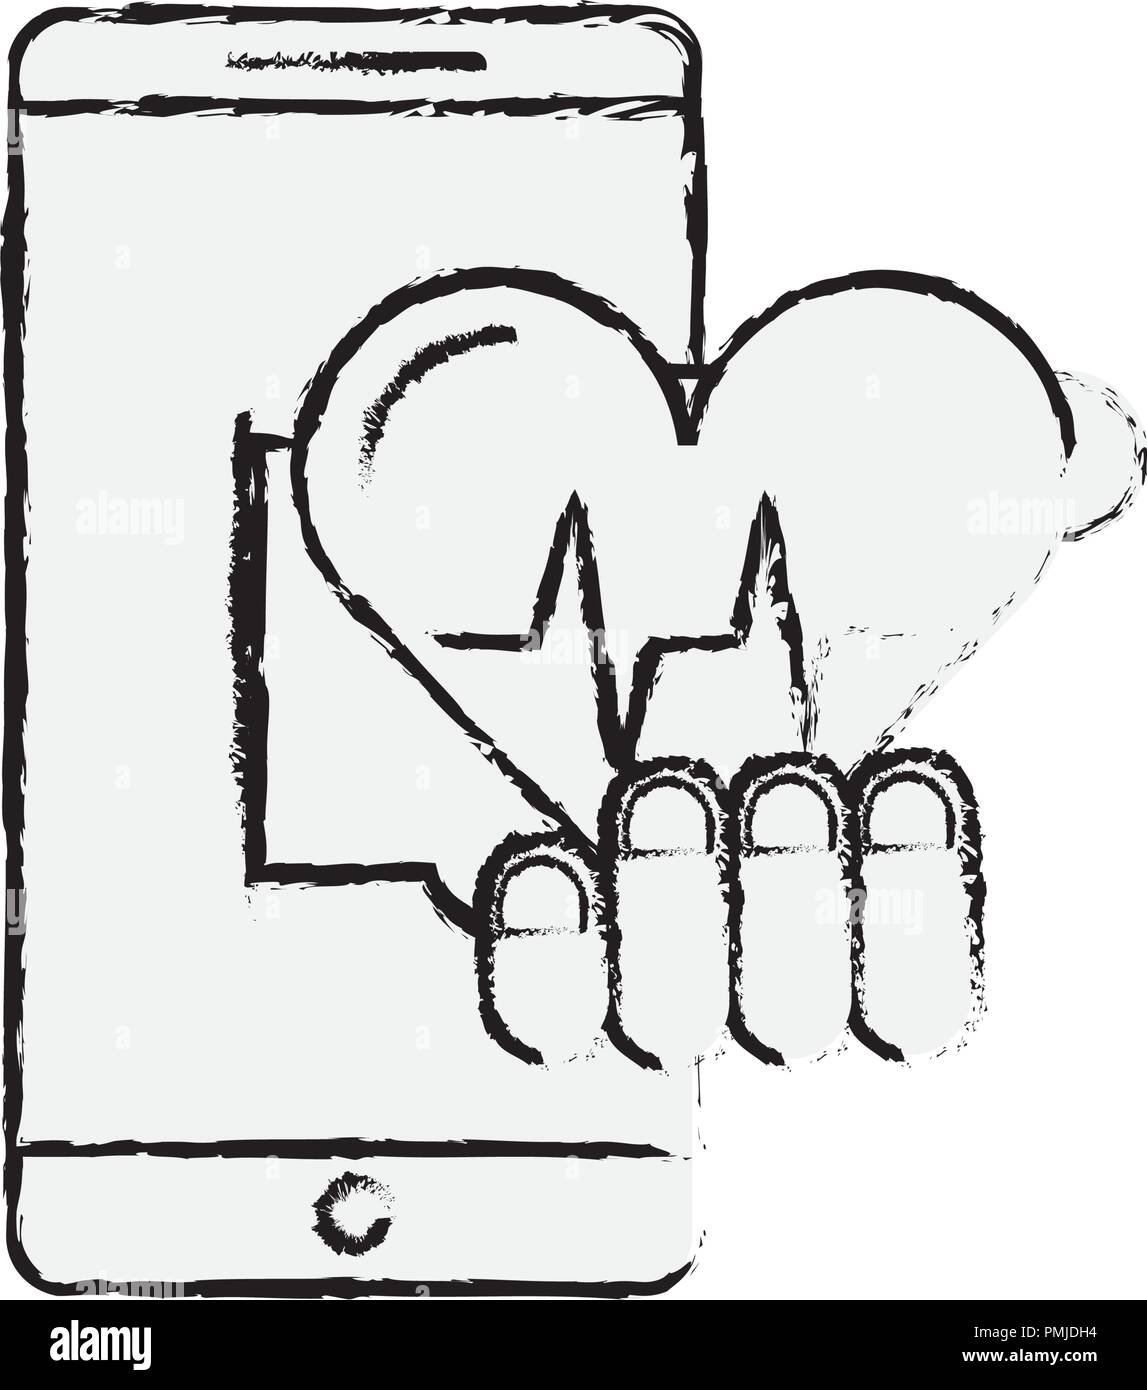 Heartbeat Hand Drawing Stock Photos Heartbeat Hand Drawing Stock